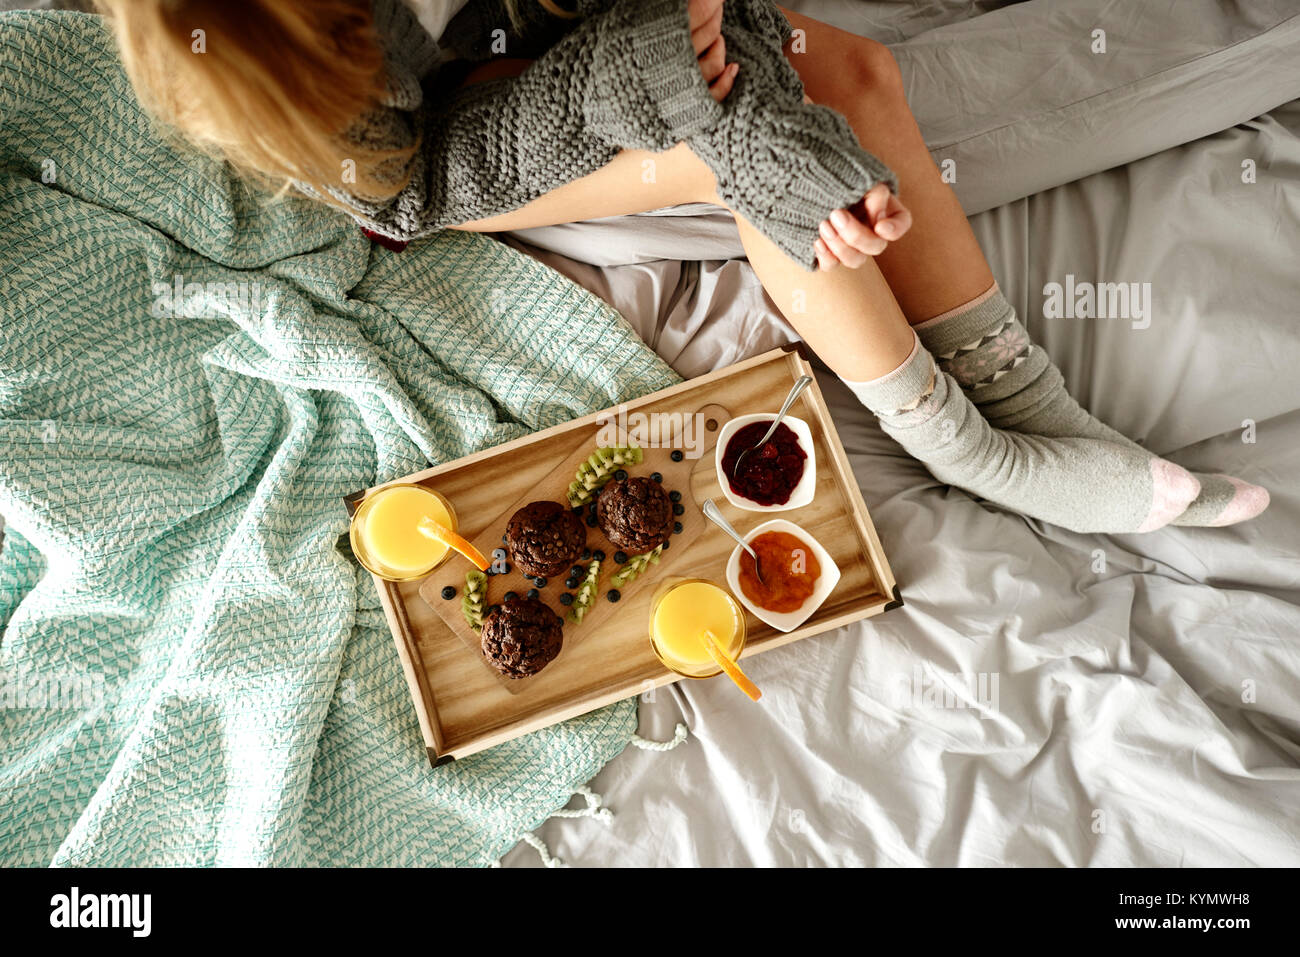 Unrecognizable woman and breakfast on bed - Stock Image